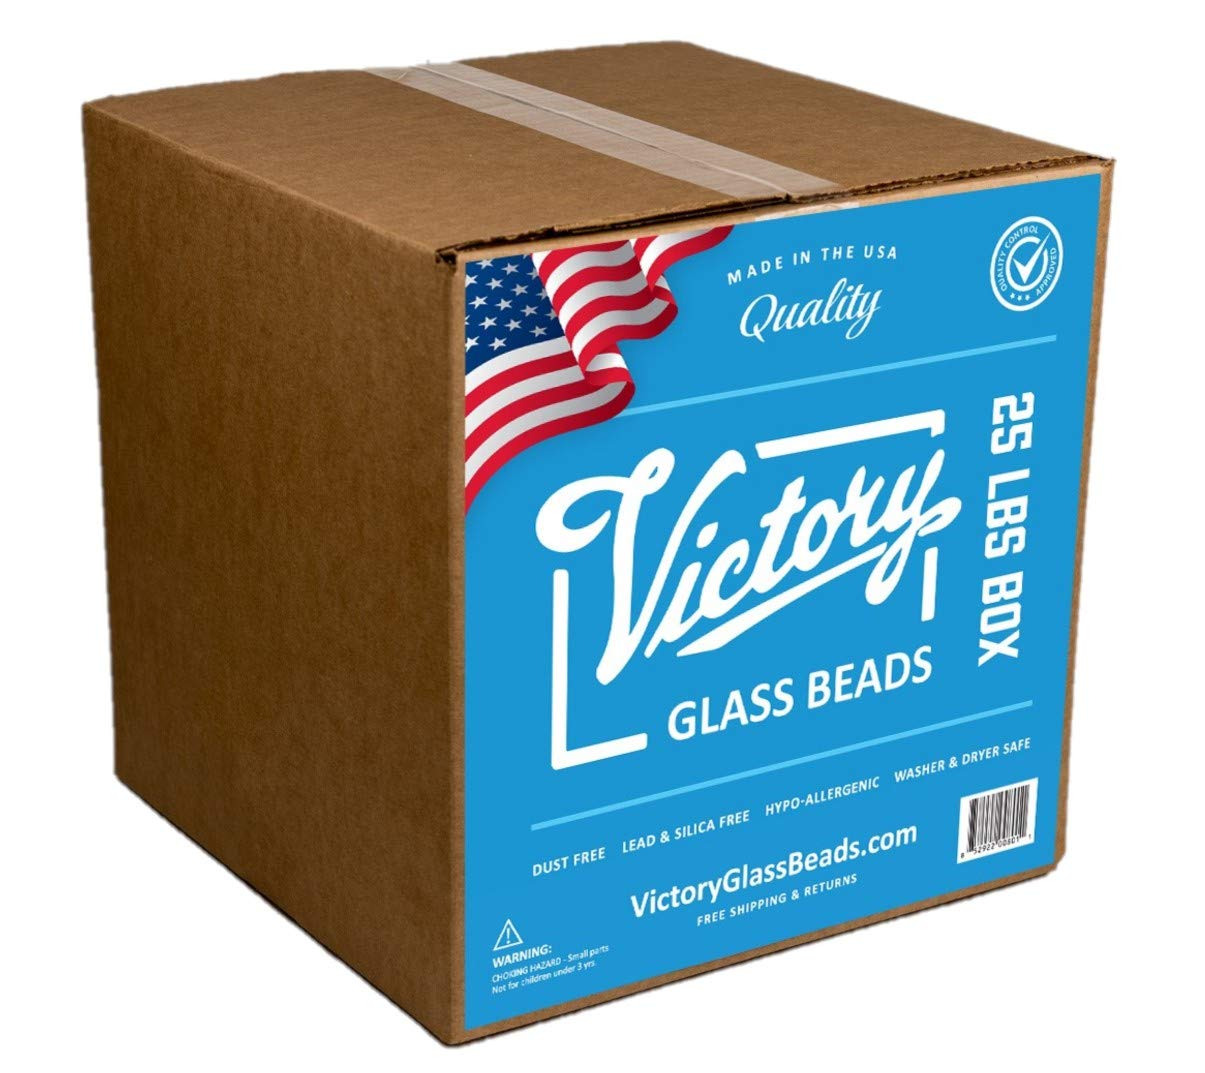 Victory Glass Beads (25 LBS) Weighted Blankets, Vests, Sensory Lap Pads, Plush Toys, Reborn Dolls, Stuffed Animals, Draft Stoppers & Crafts. Made in USA. by Victory Glass Beads